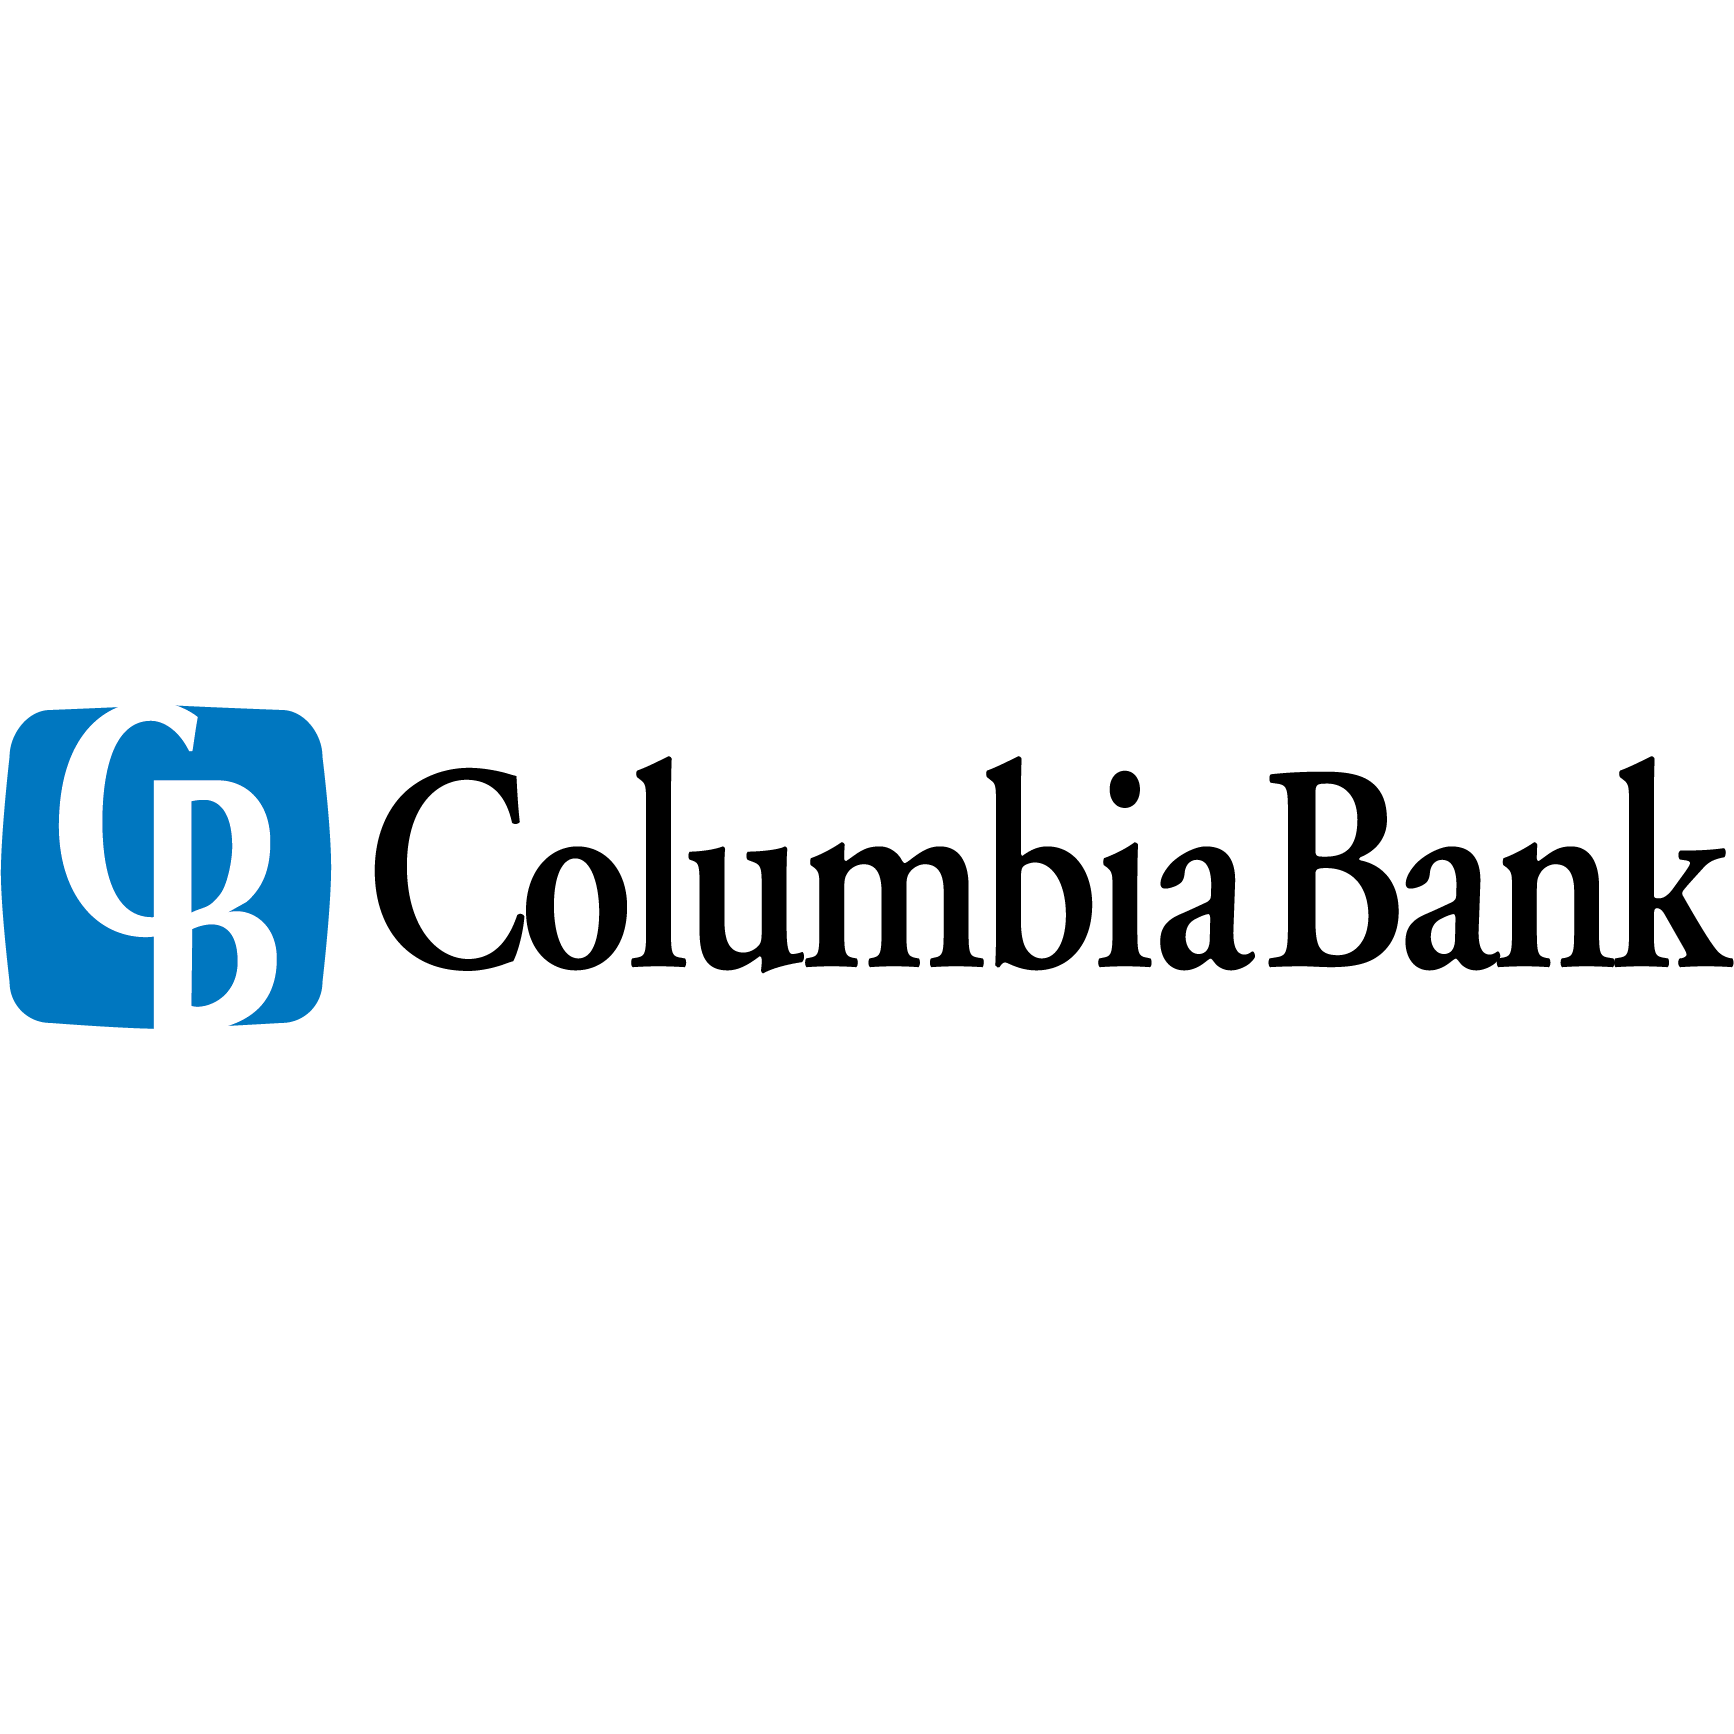 Columbia Bank - Buckley, WA - Banking